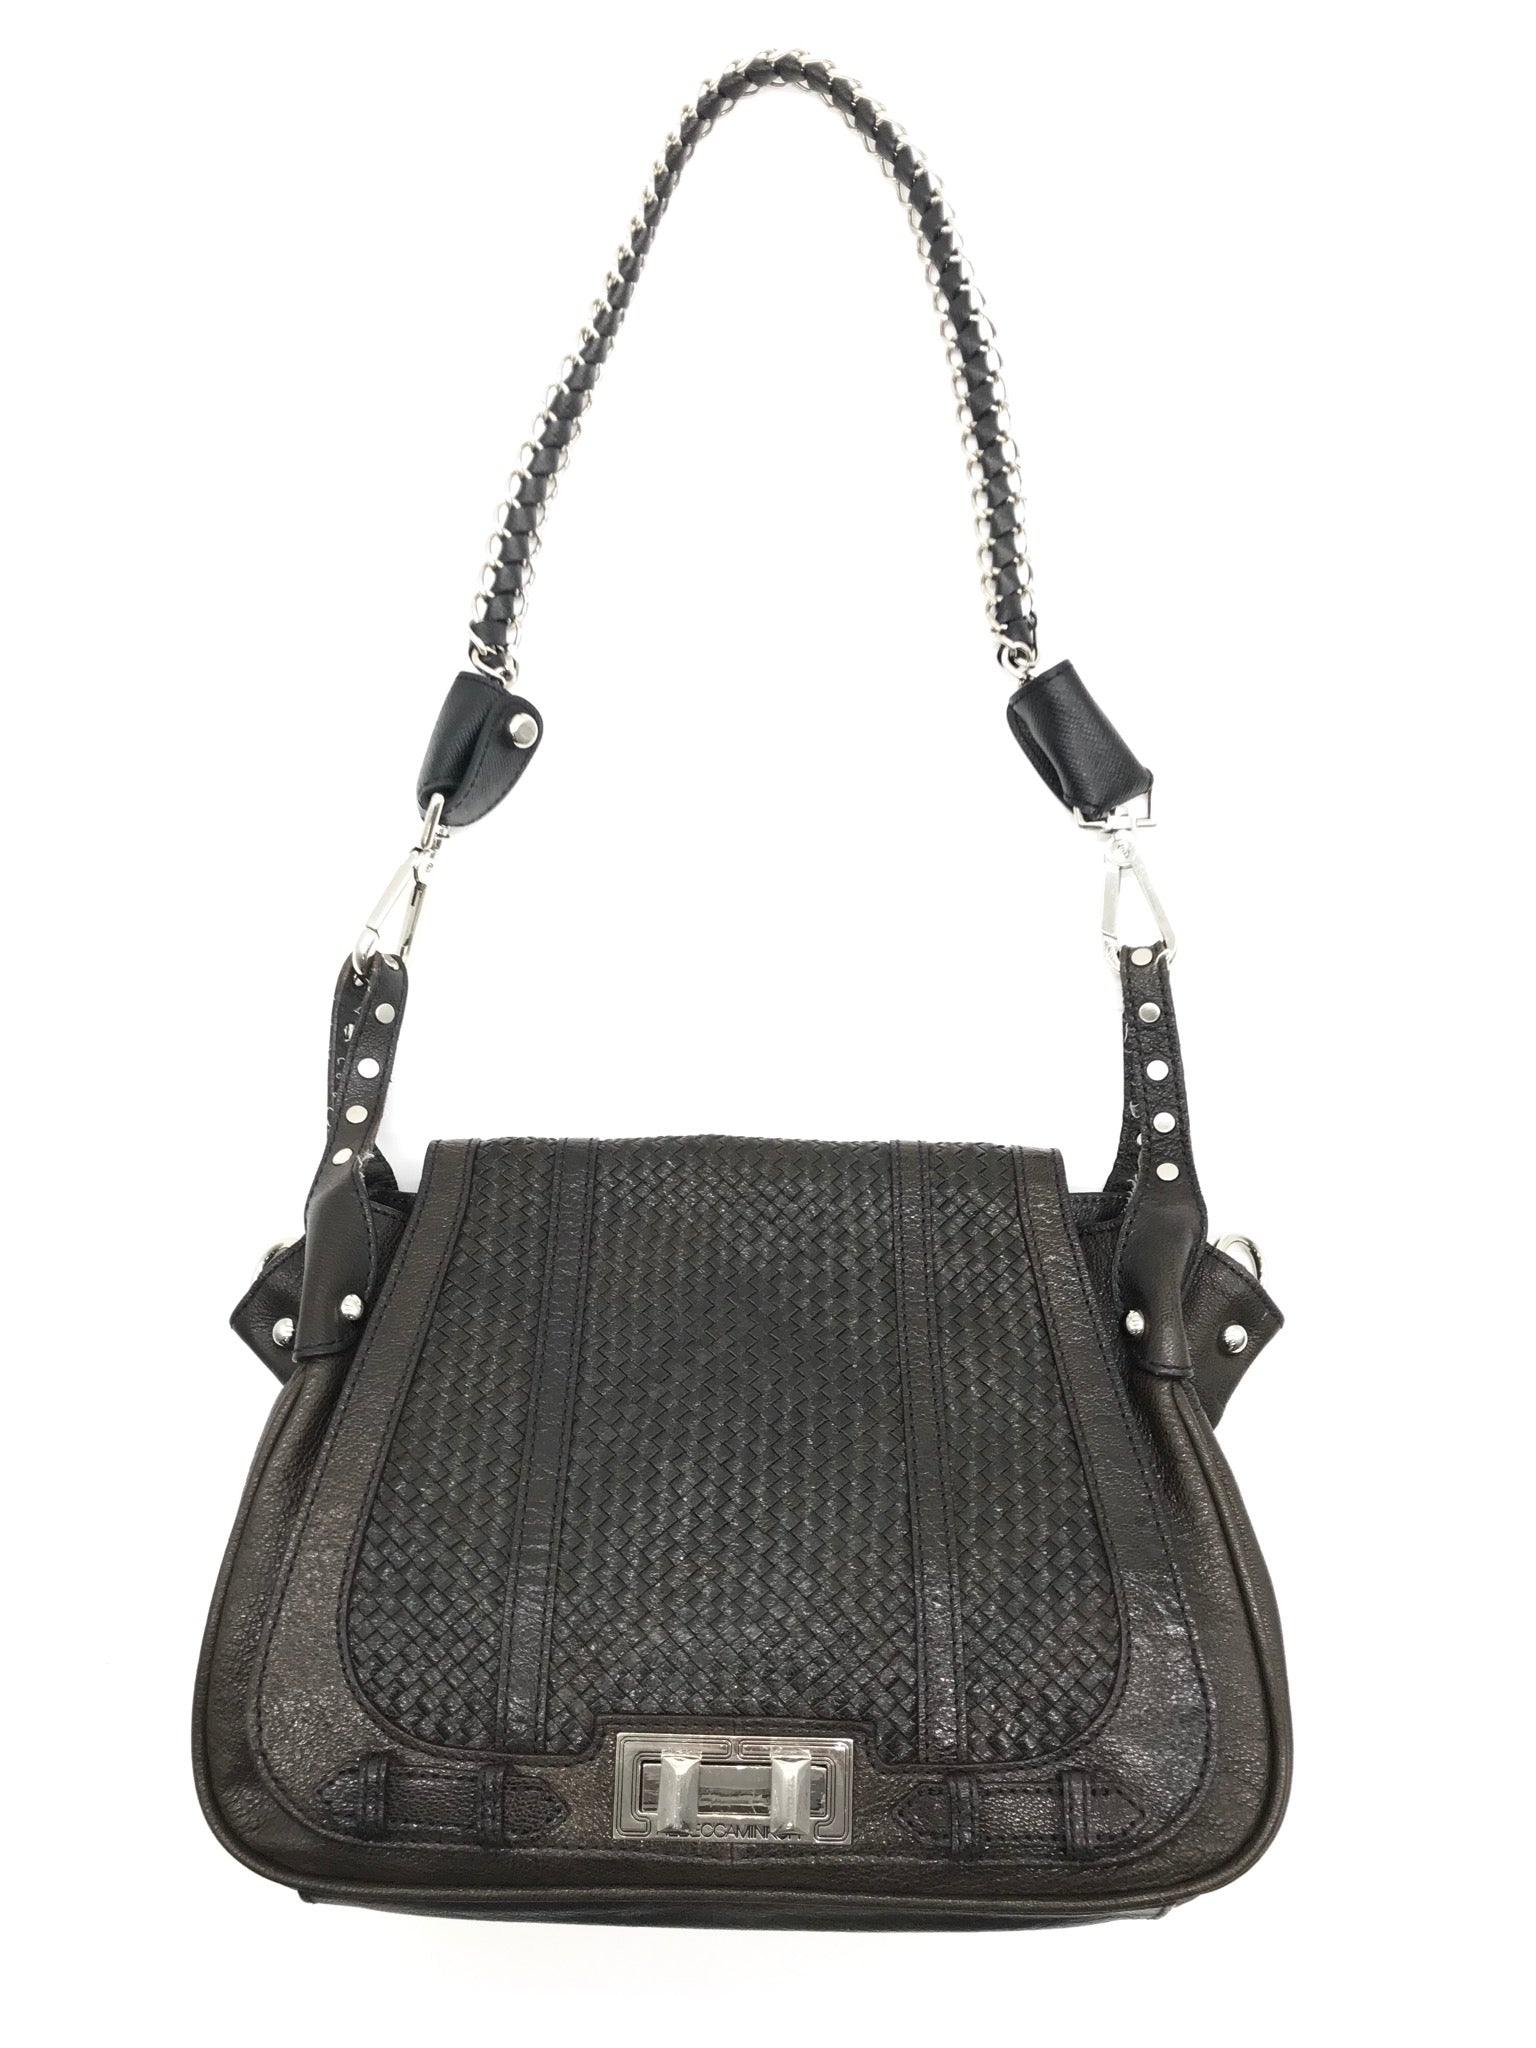 Primary Photo - BRAND: REBECCA MINKOFF <BR>STYLE: HANDBAG DESIGNER <BR>COLOR: BROWN <BR>SIZE: MEDIUM <BR>SKU: 262-26275-65769<BR>GENTLE WEAR SHOWS - AS IS